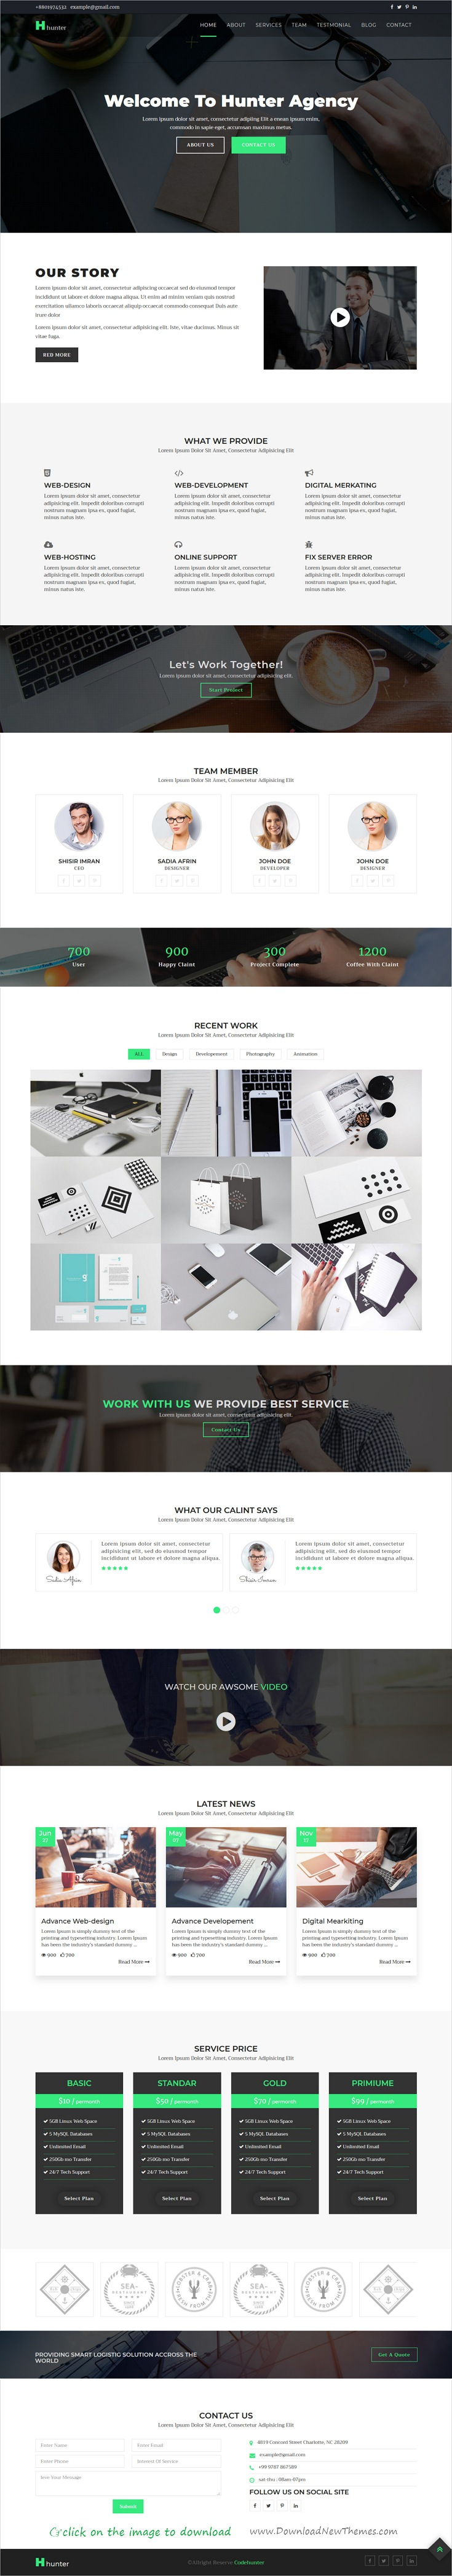 Hunter-One Page Resonsive Template | Template, Web design ...